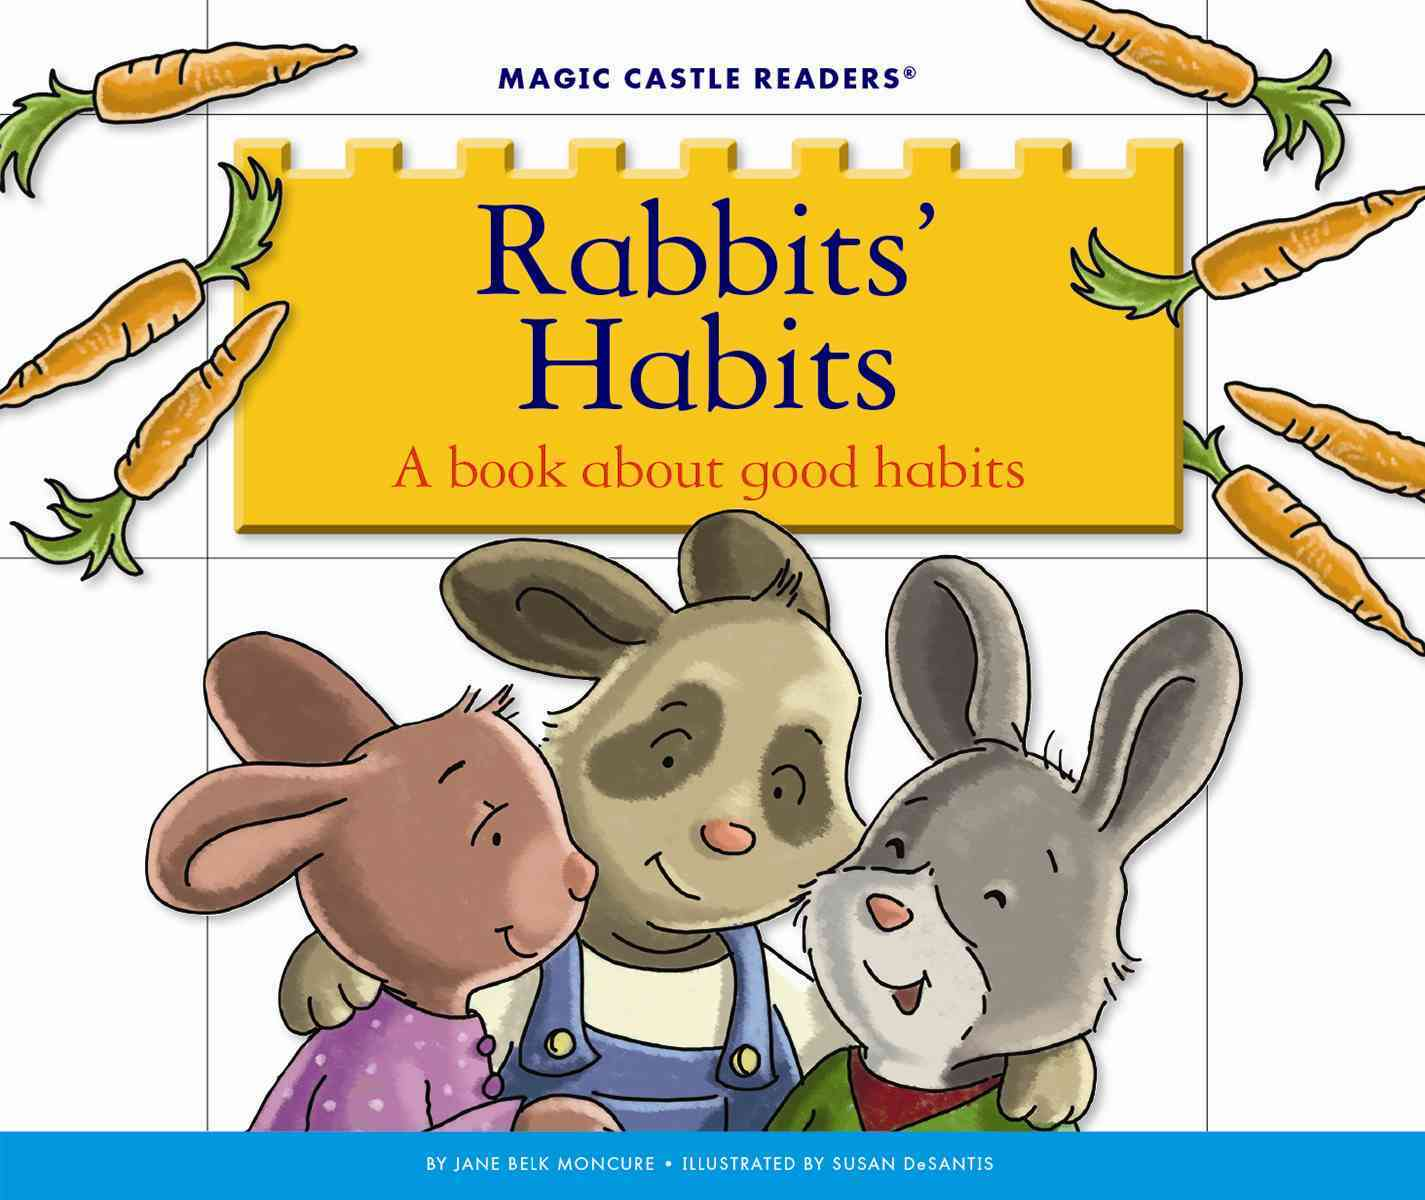 Child's World Rabbits' Habits: A Book about Good Habits by Moncure, Jane Belk/ DeSantis, Susan [Library Binding] at Sears.com